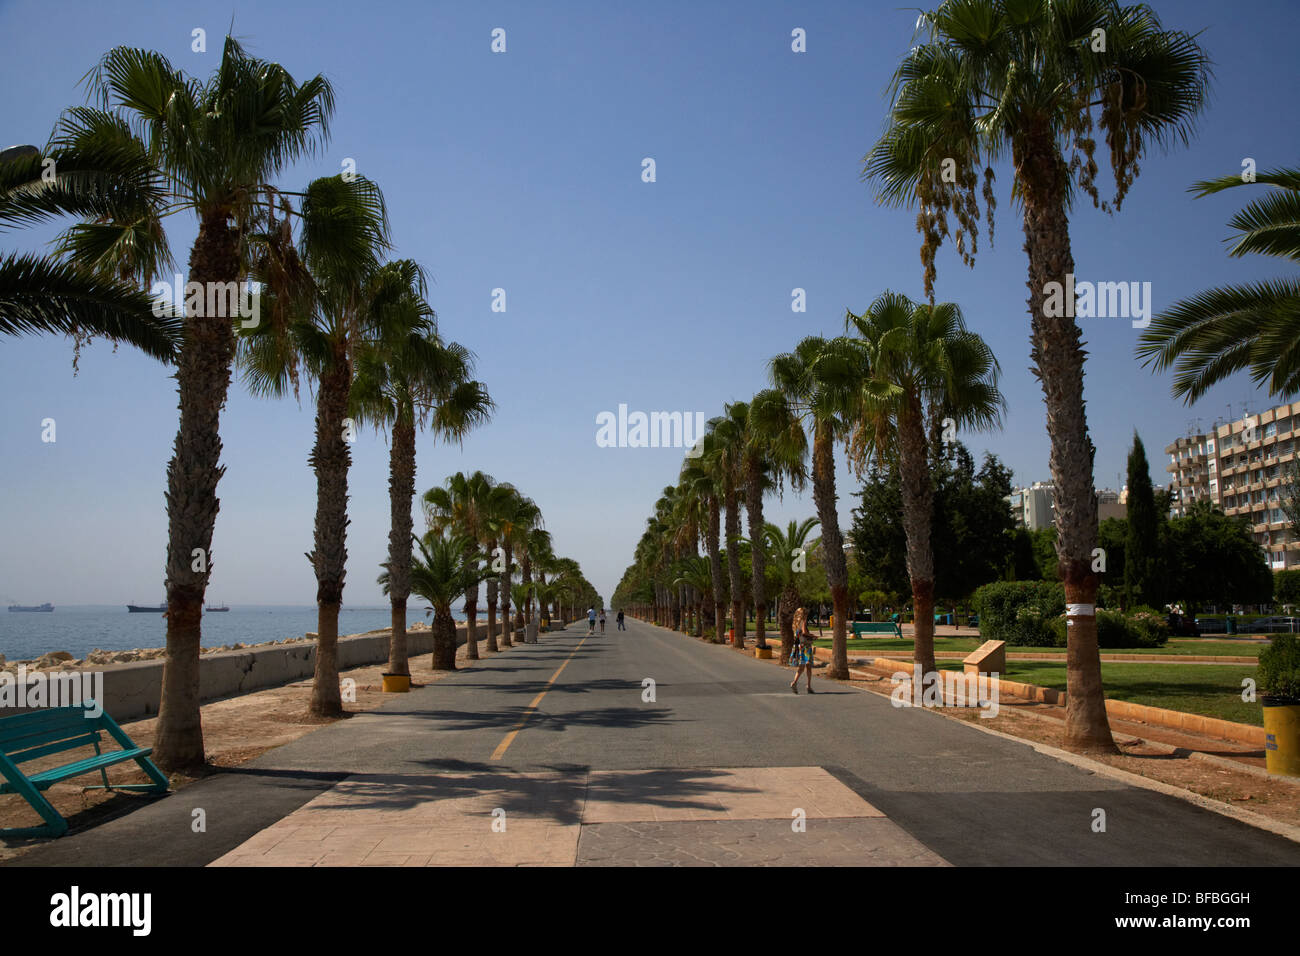 palm tree lined seafront promenade in twin cities park on reclaimed land Limassol lemesos republic of cyprus europe - Stock Image